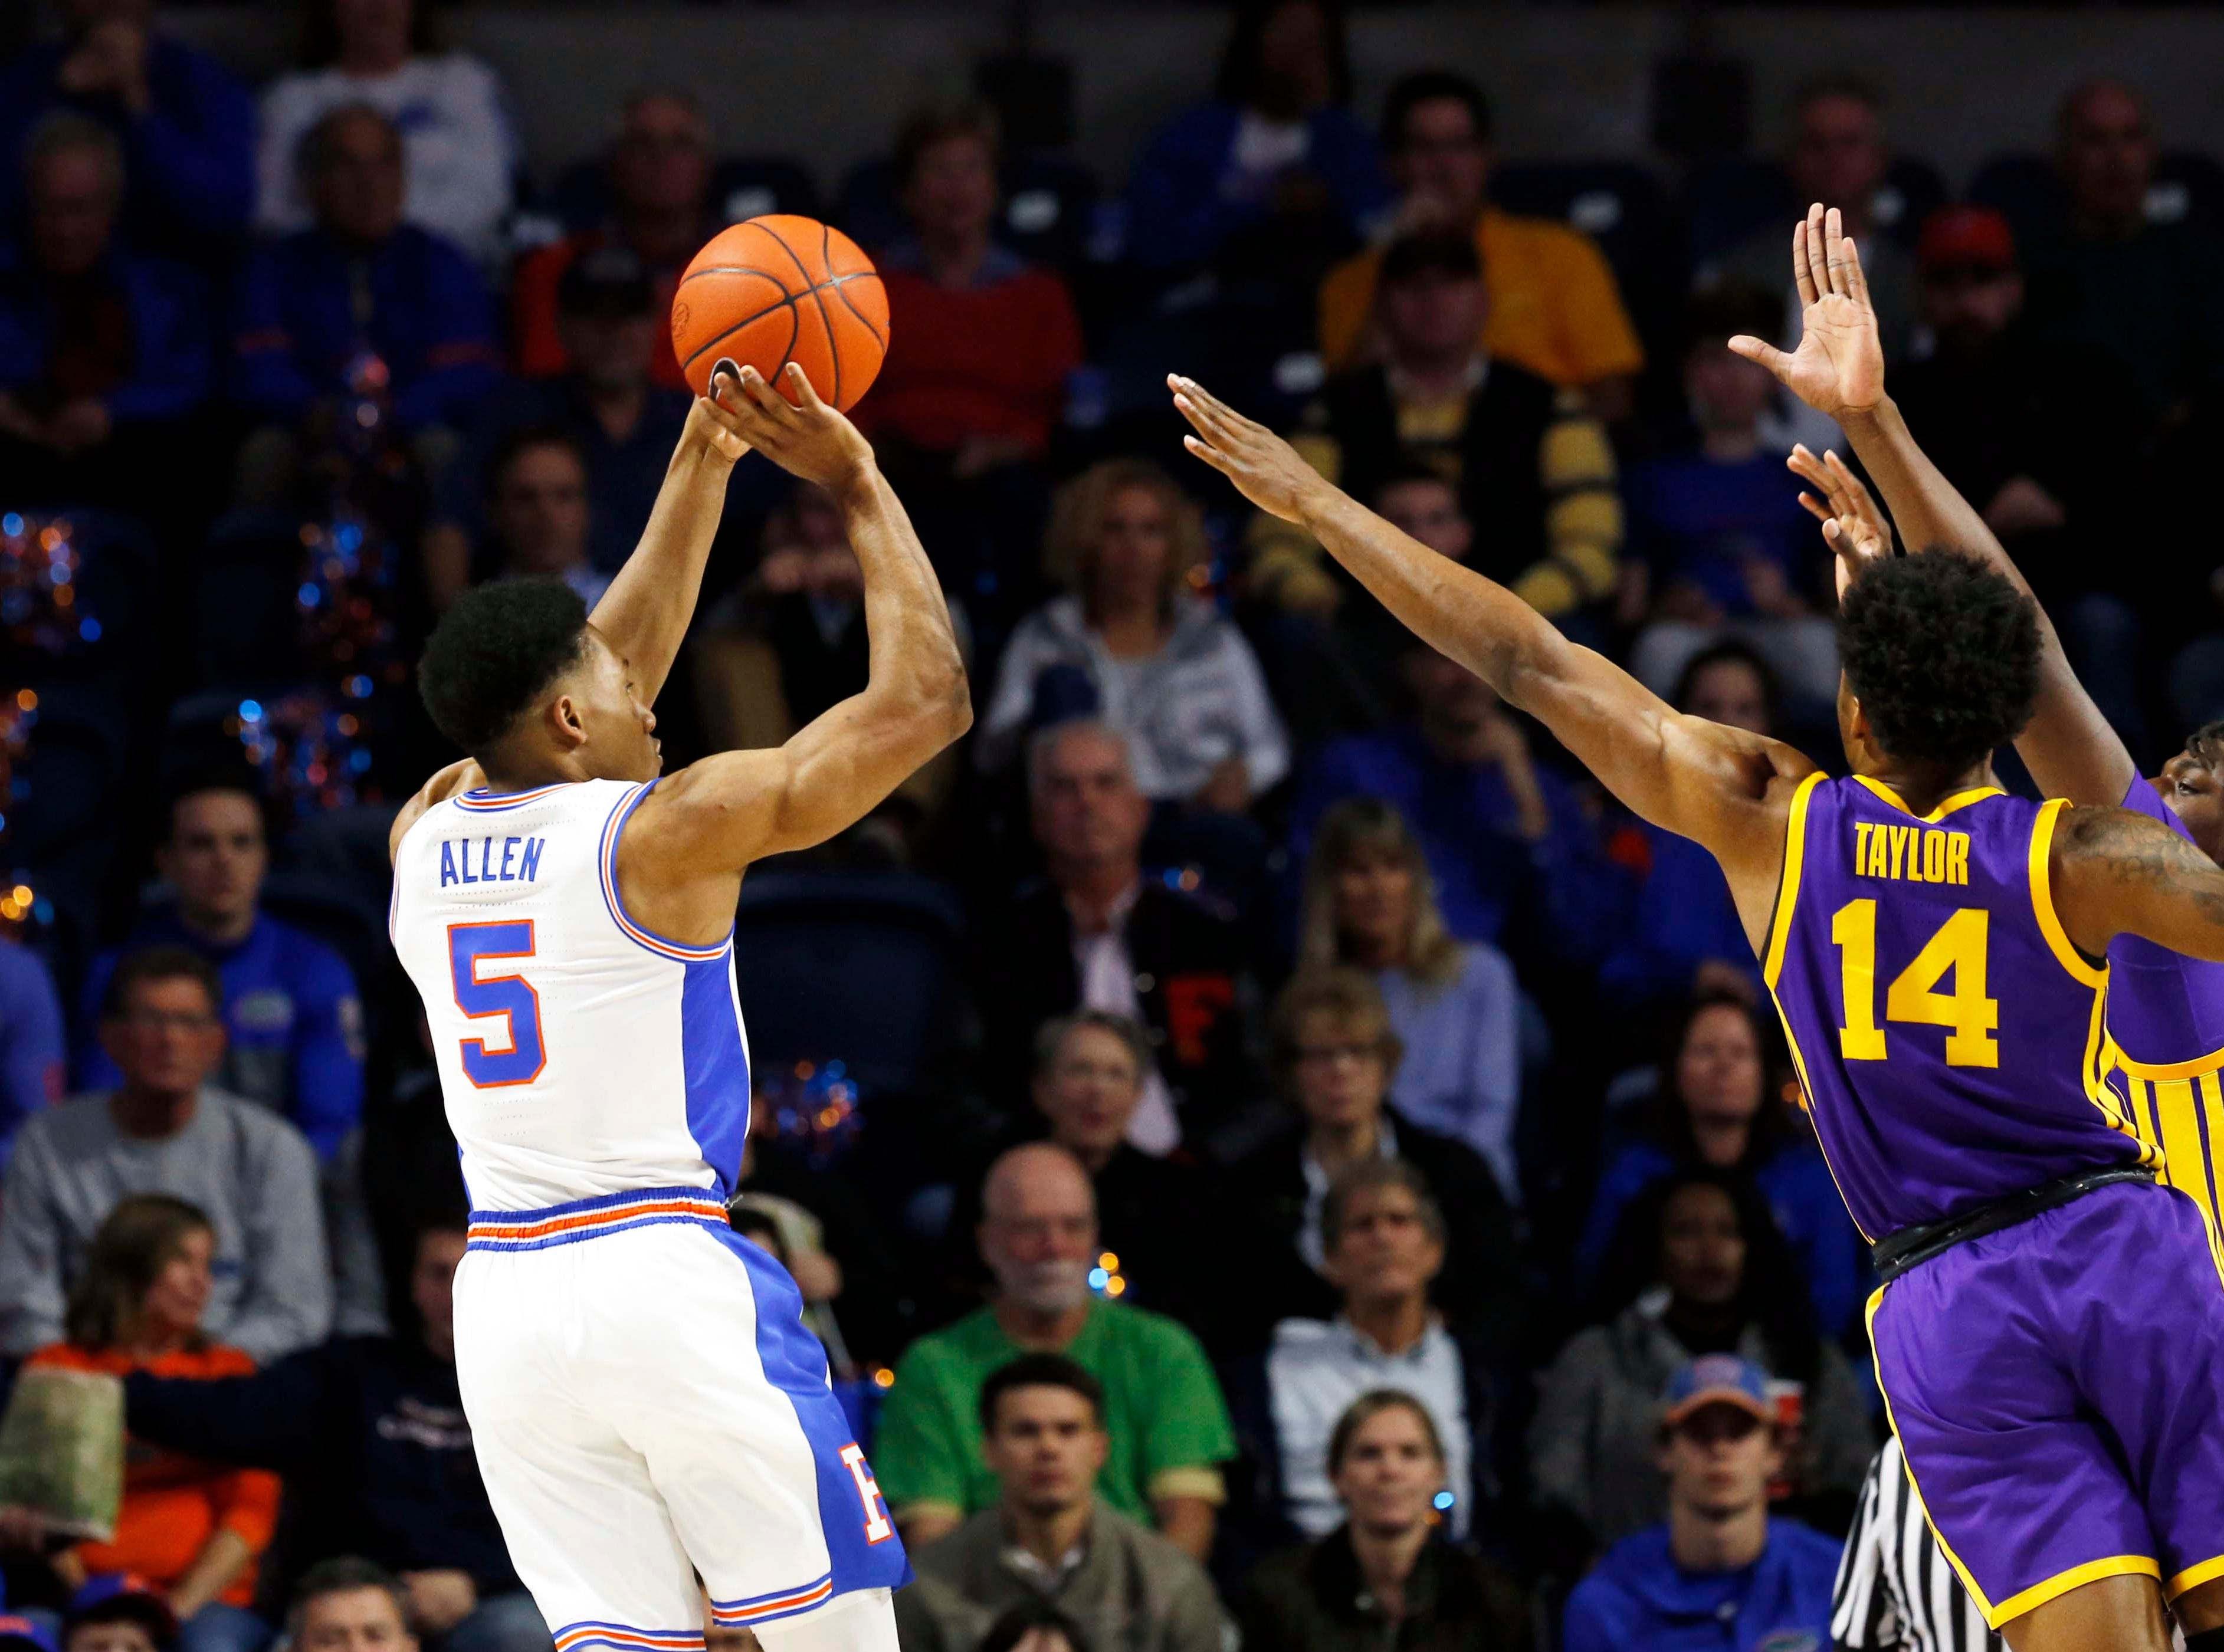 Mar 6, 2019; Gainesville, FL, USA; Florida Gators guard KeVaughn Allen (5) shoots over LSU Tigers guard Marlon Taylor (14) during the first half at Exactech Arena. Mandatory Credit: Kim Klement-USA TODAY Sports